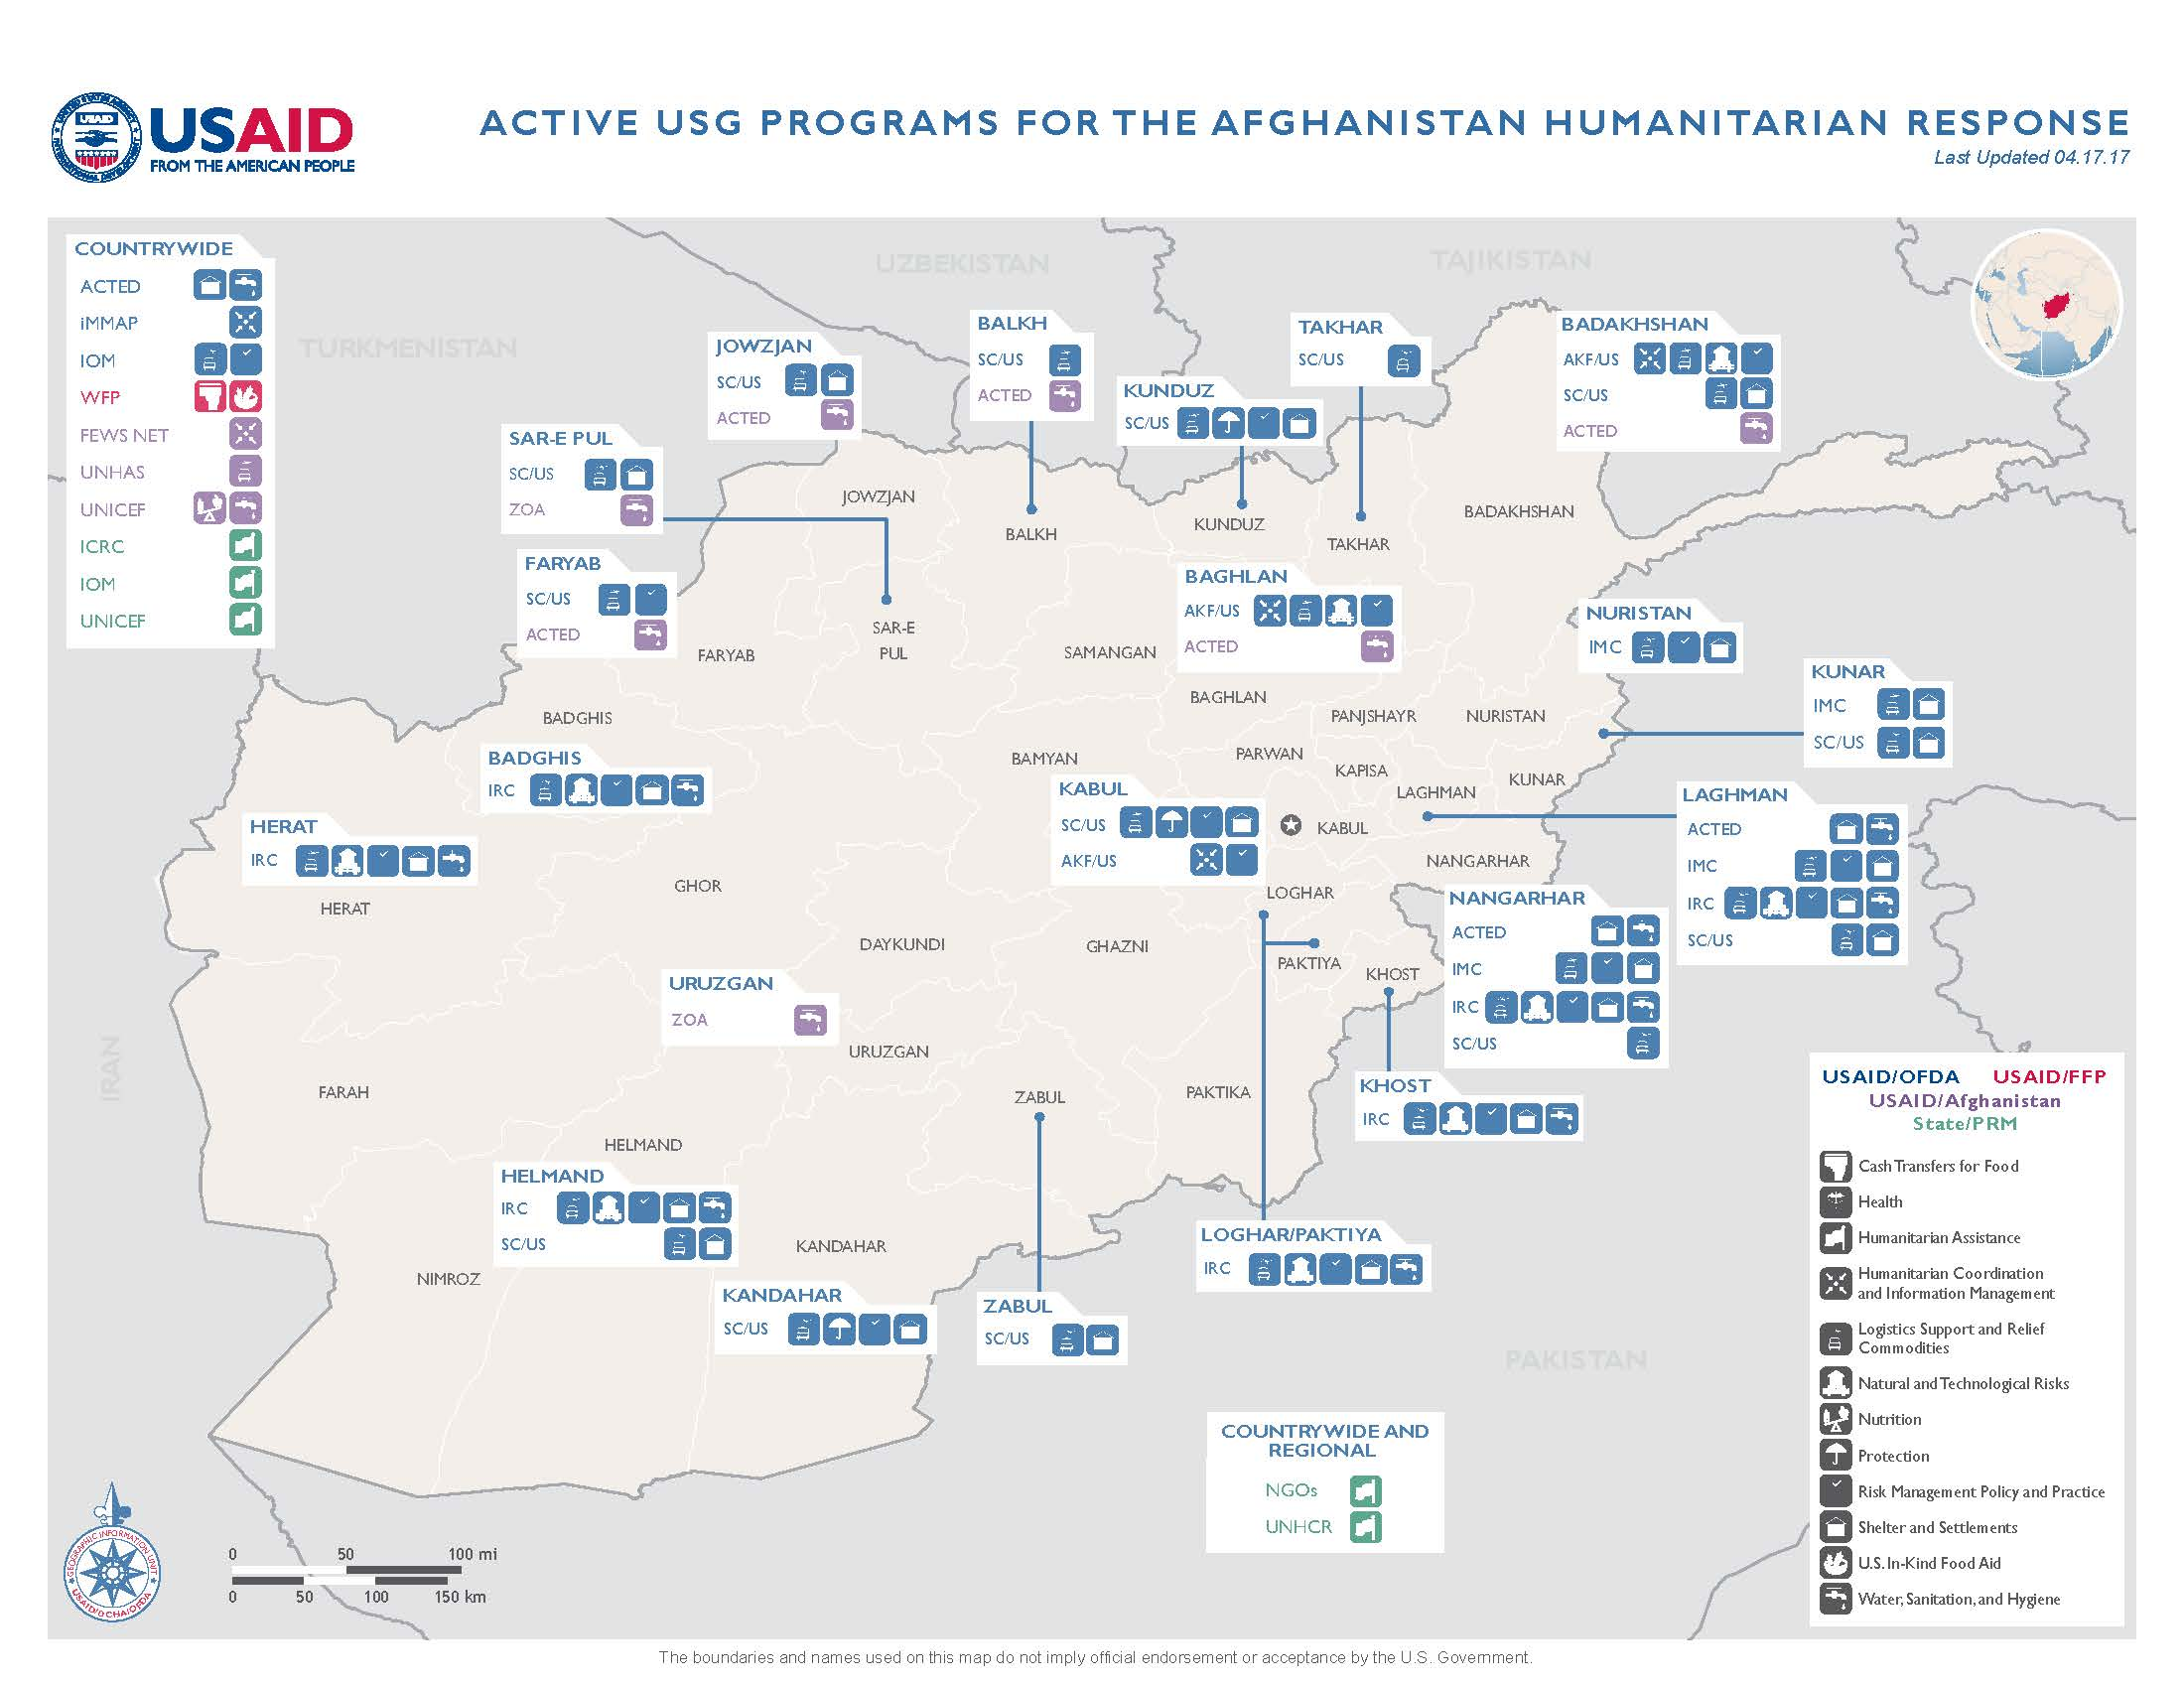 041717 usaid dcha afghanistan complex emergency program map us 041717 usaid dcha afghanistan complex emergency program map gumiabroncs Image collections